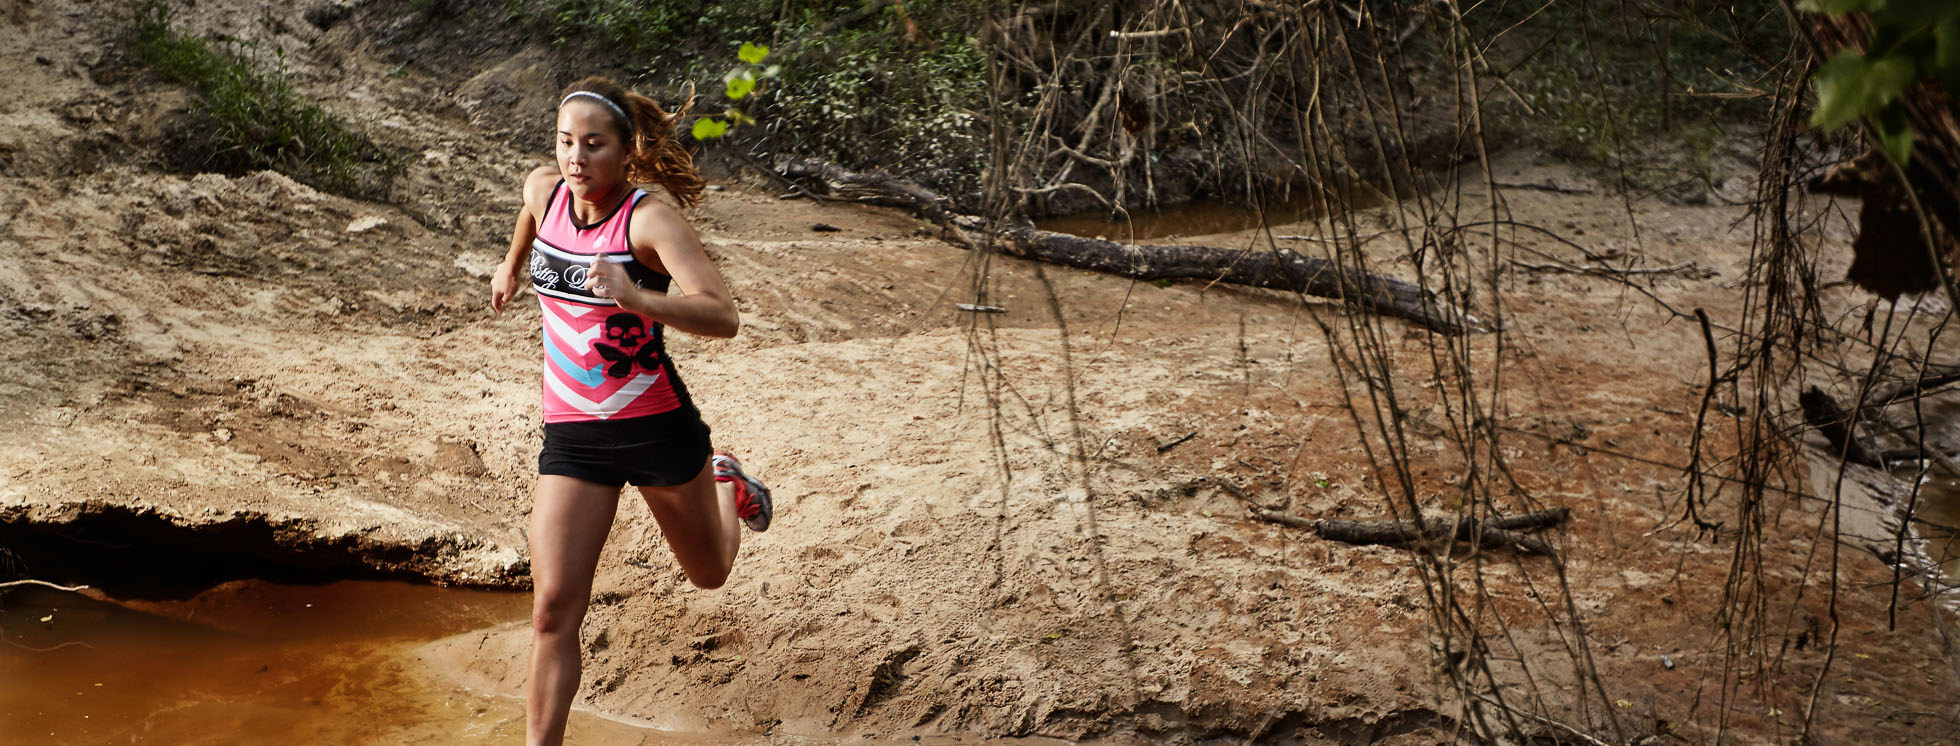 Behind the Scenes: Trail Running Photo Shoot